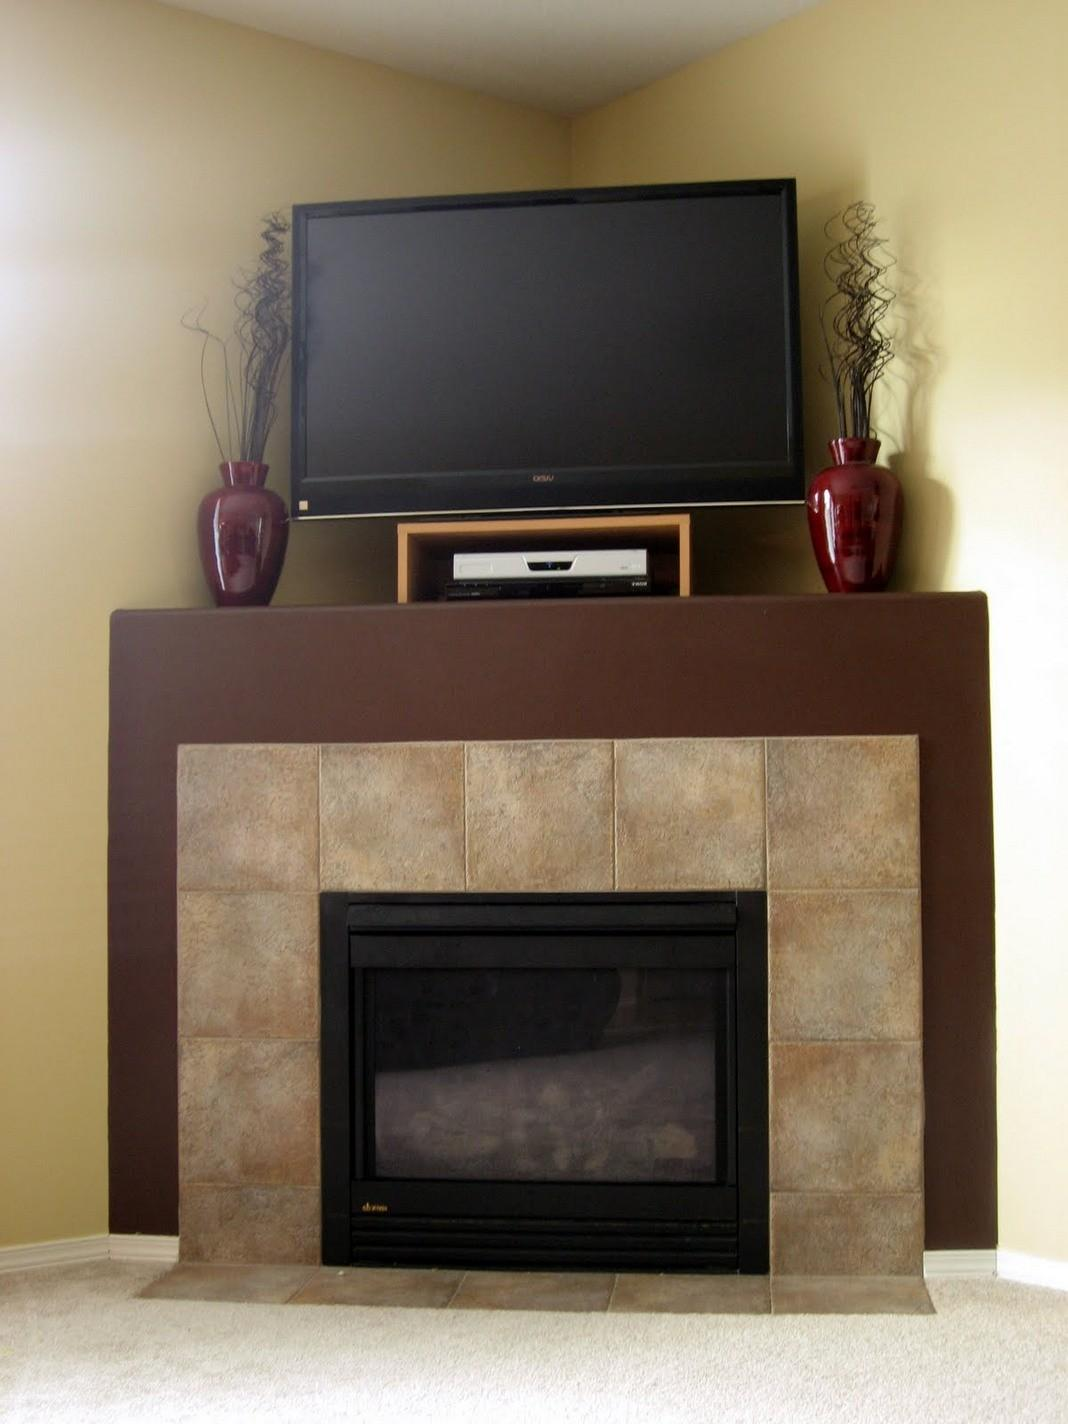 Ingenious Tv Above Fireplace Pictures Ideas That Follow The Latest Trends Trends In 2021 Photographs Decoratorist